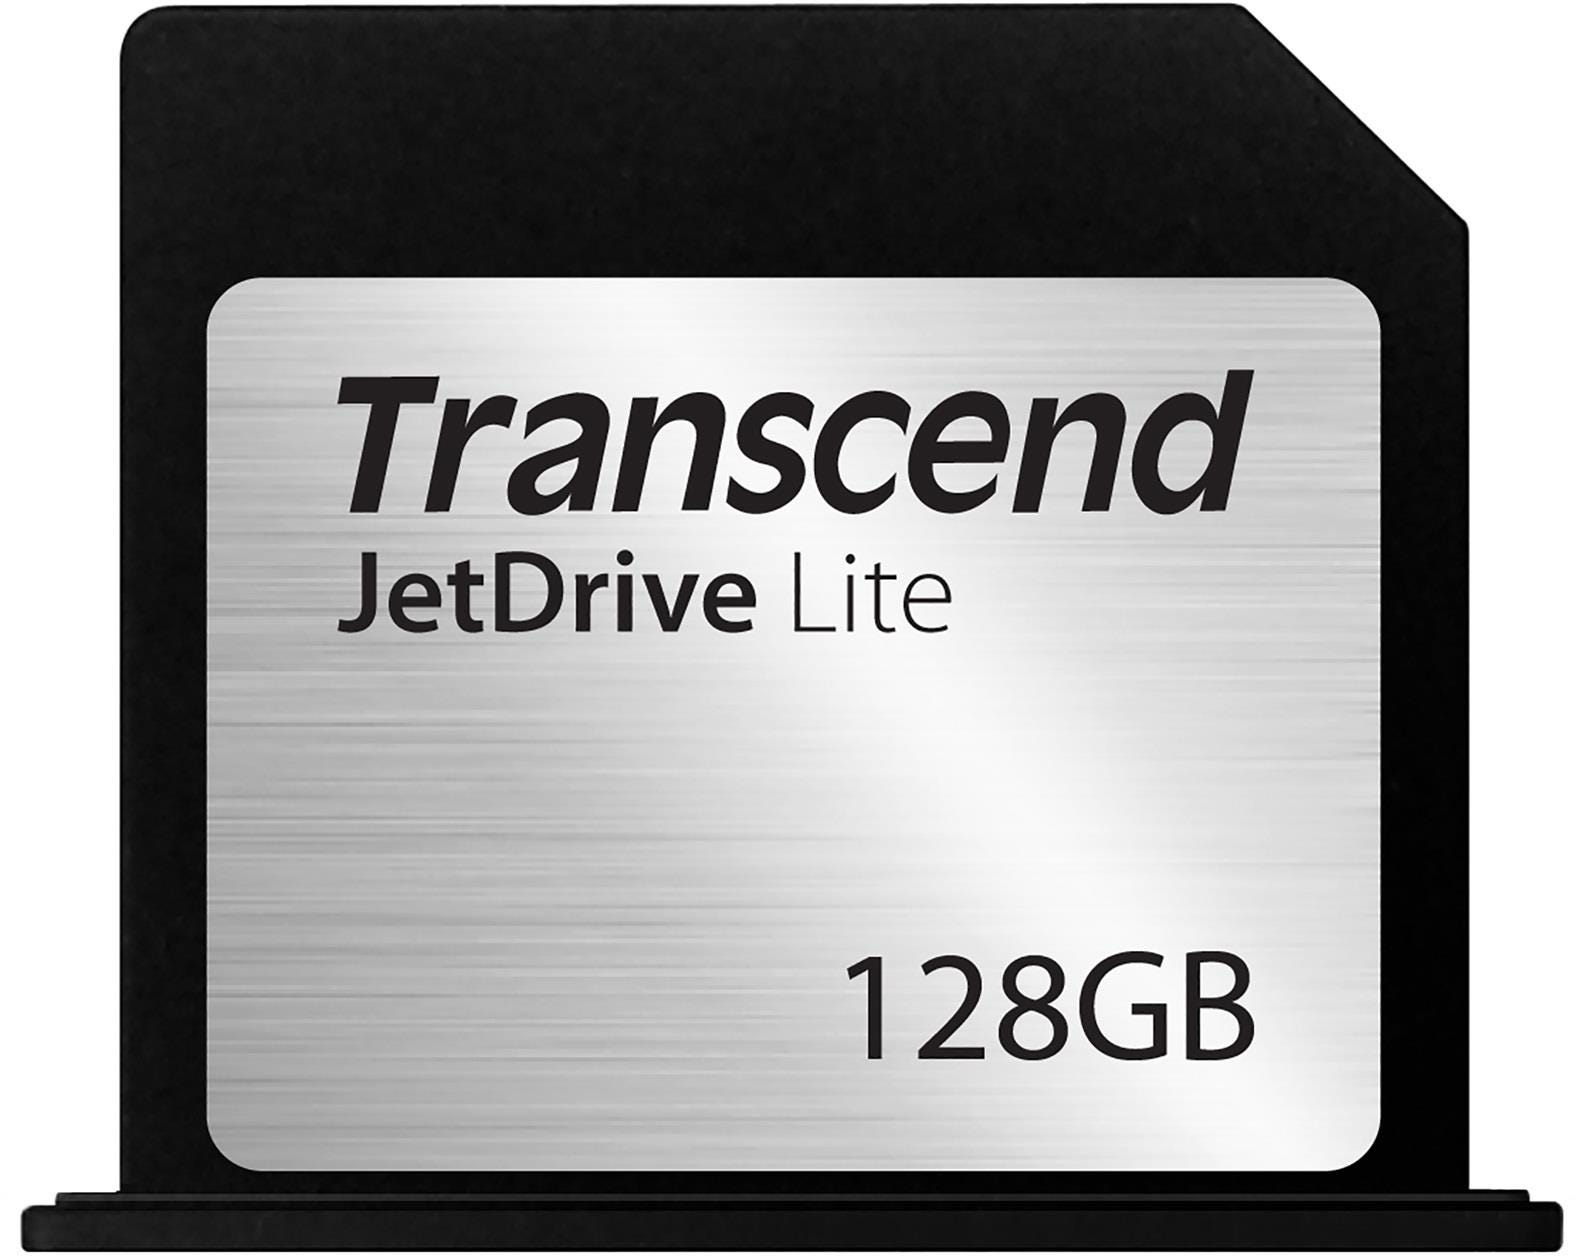 Transcend JetDrive Lite 350 128GB Storage Expansion Card